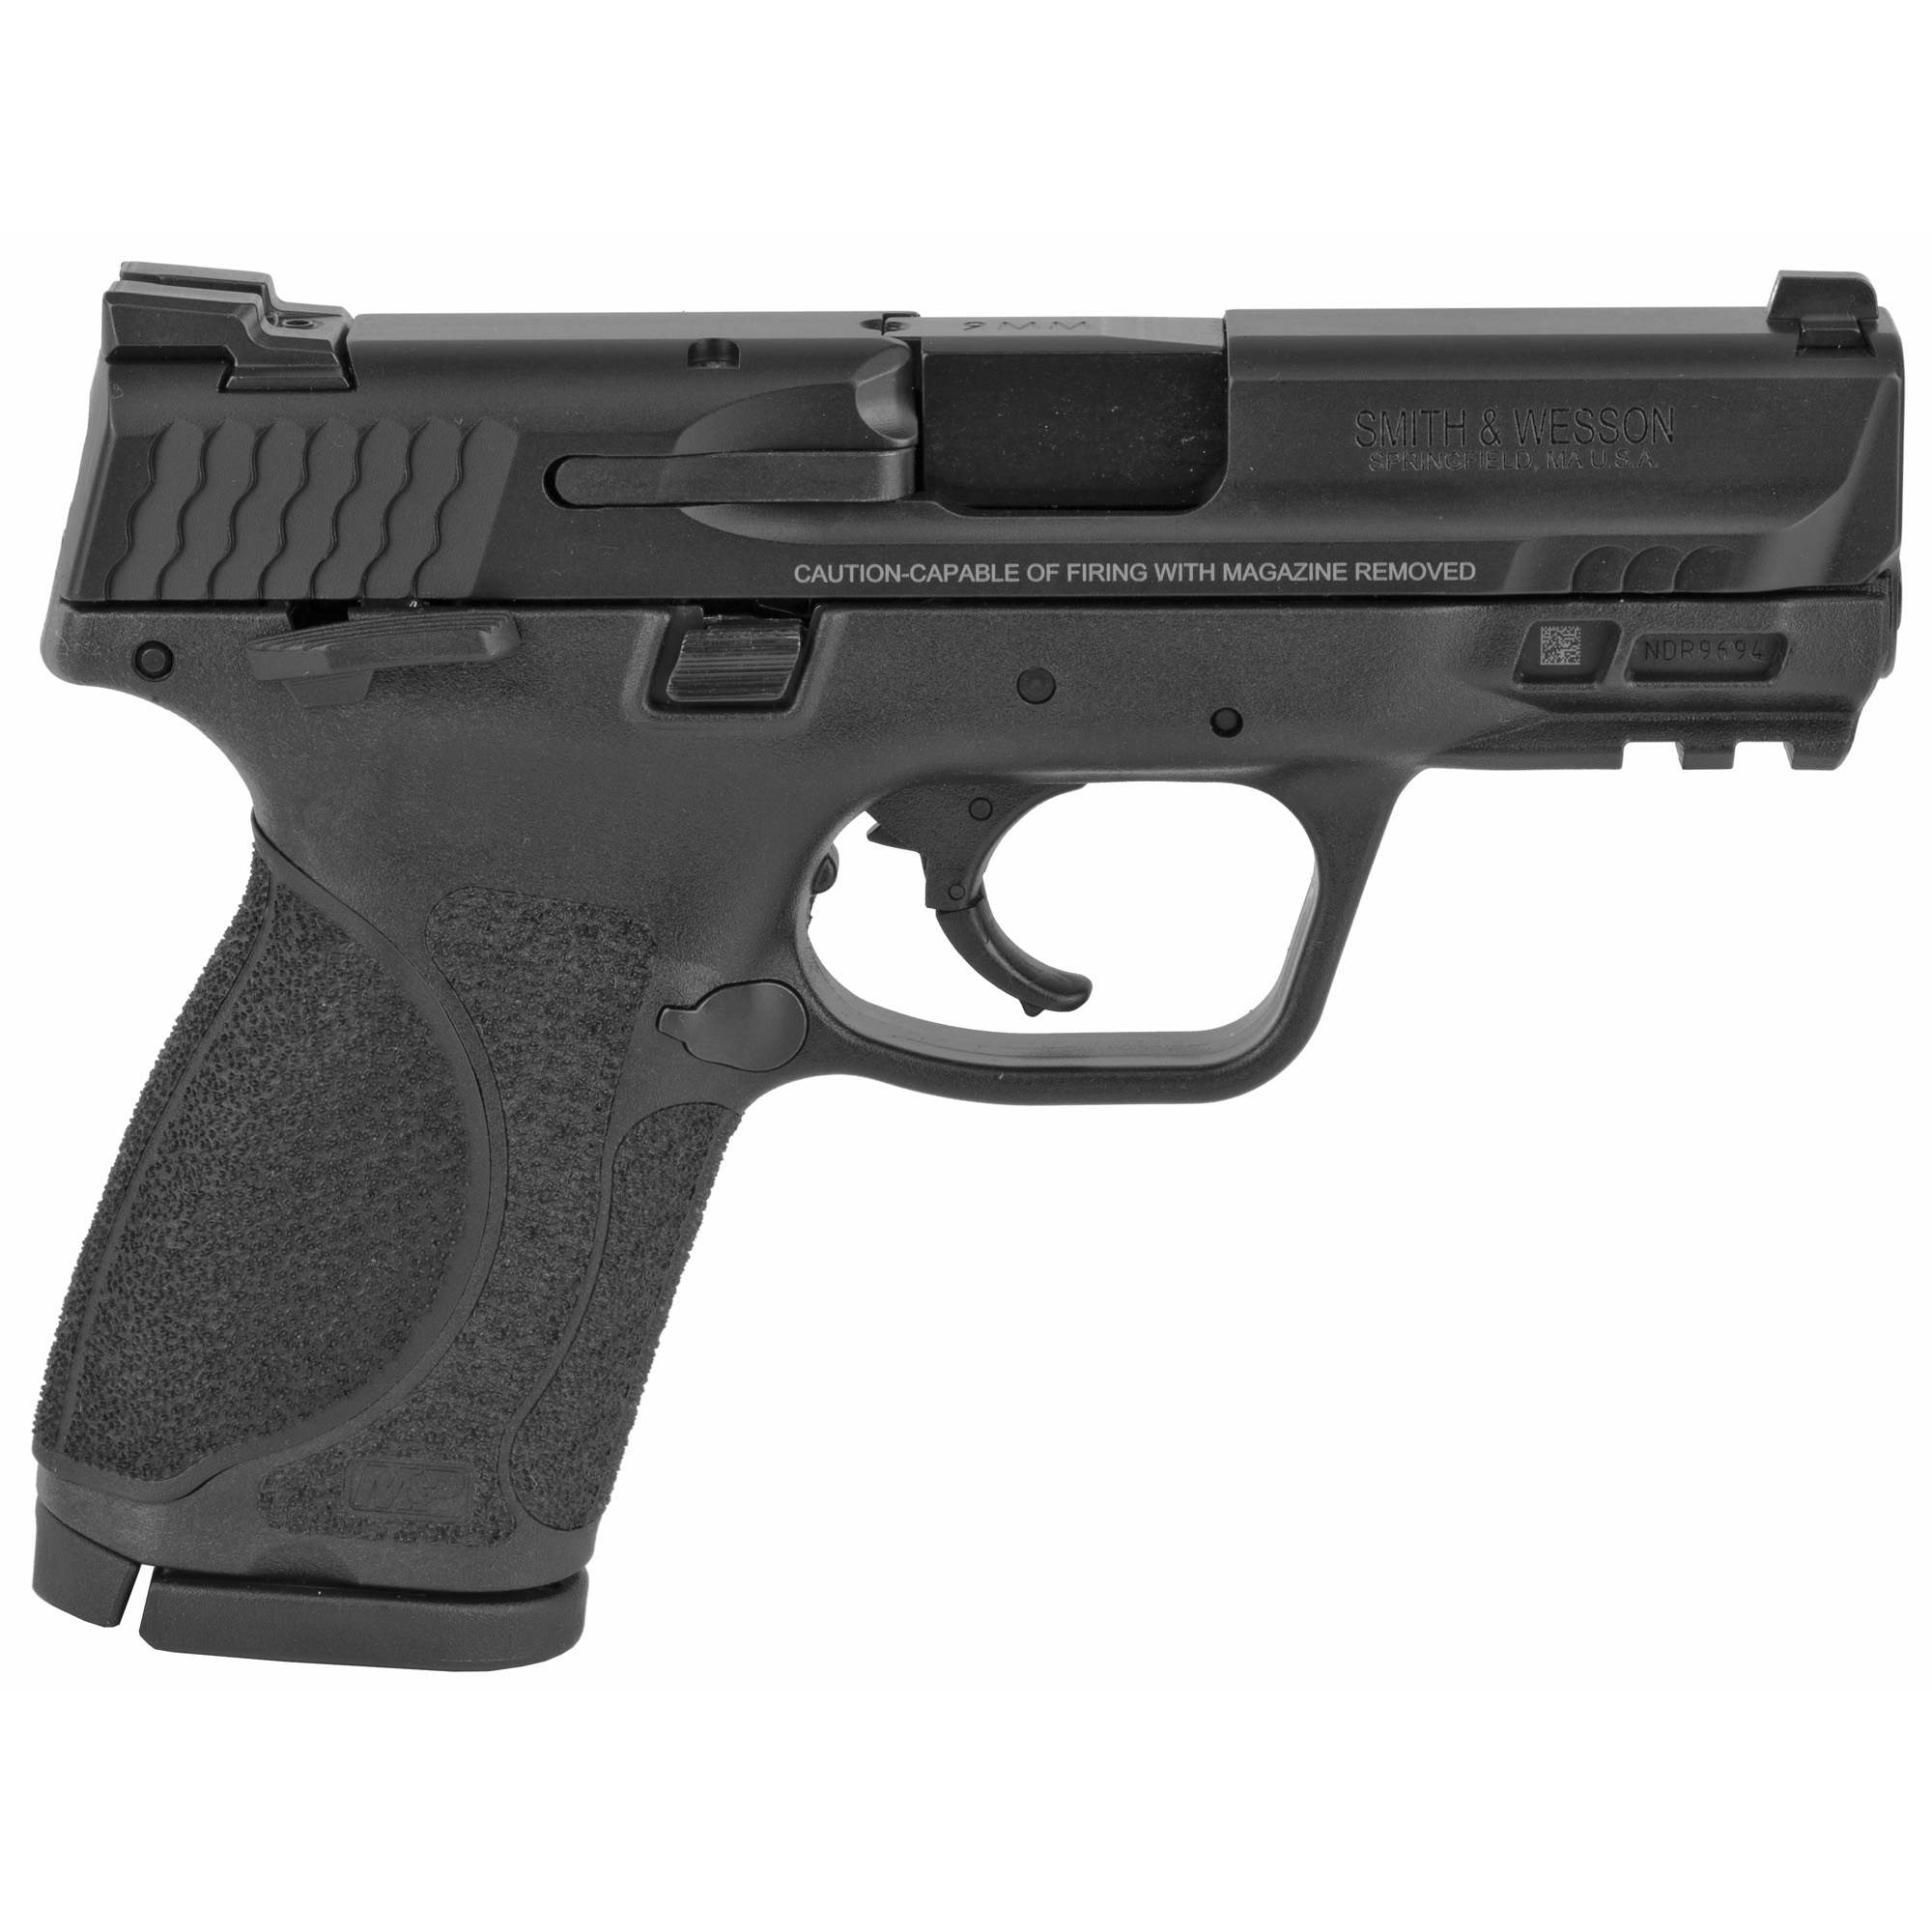 """Smith & Wesson M&P 2.0 Striker Fired 3.6"""" 9mm 15rd Fixed Sights - Black-img-1"""